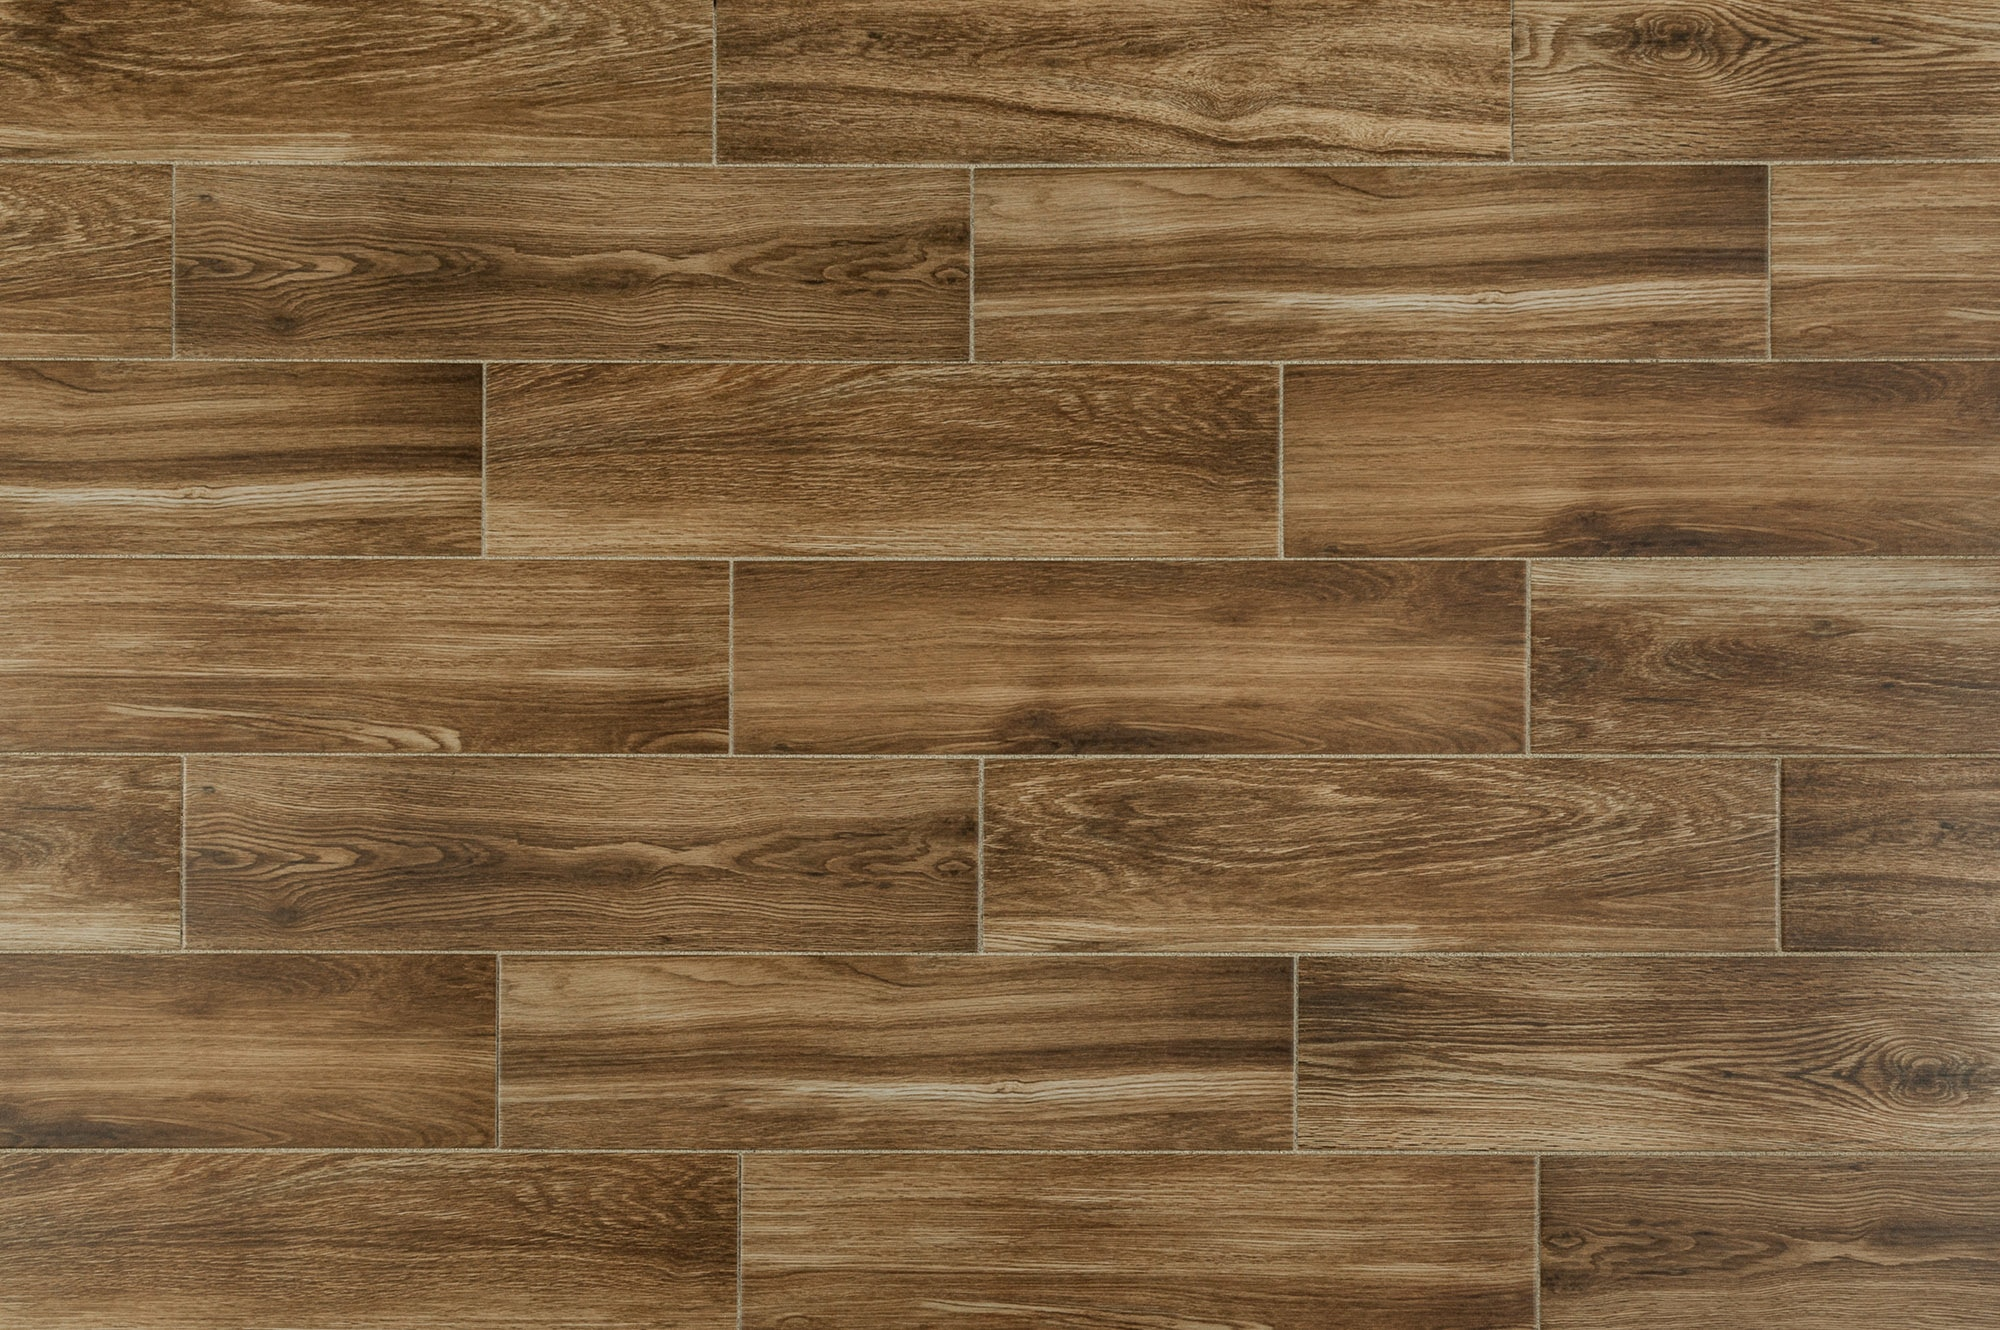 Free samples kaska porcelain tile barn wood series rustic free samples kaska porcelain tile barn wood series rustic timber 6x24 dailygadgetfo Choice Image